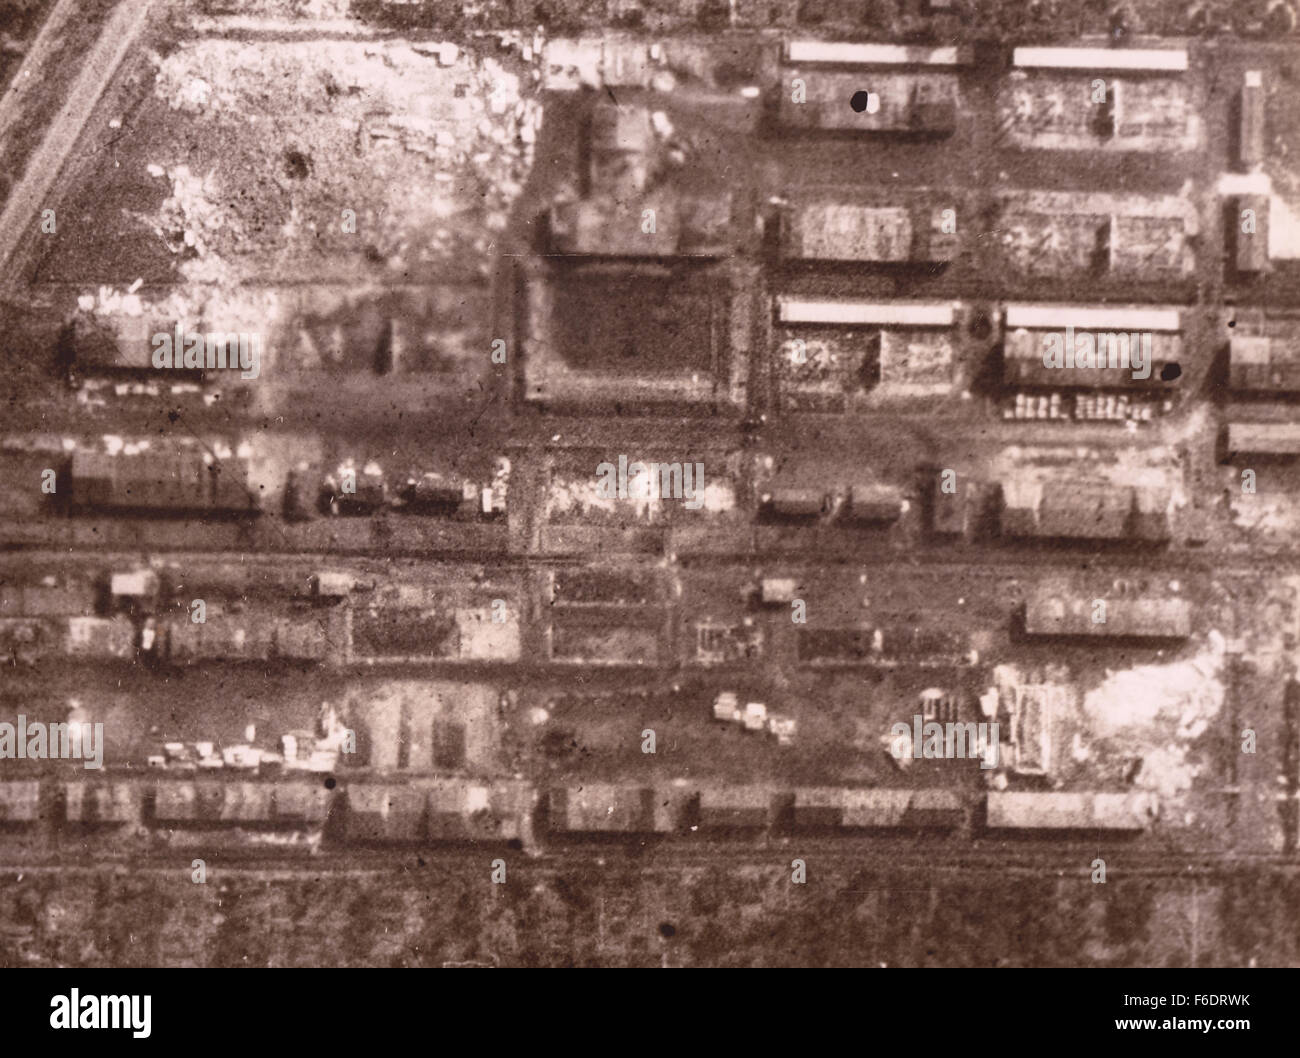 Germany Focke Wulf Works REconnaissance image after RAF bombing Stock Photo